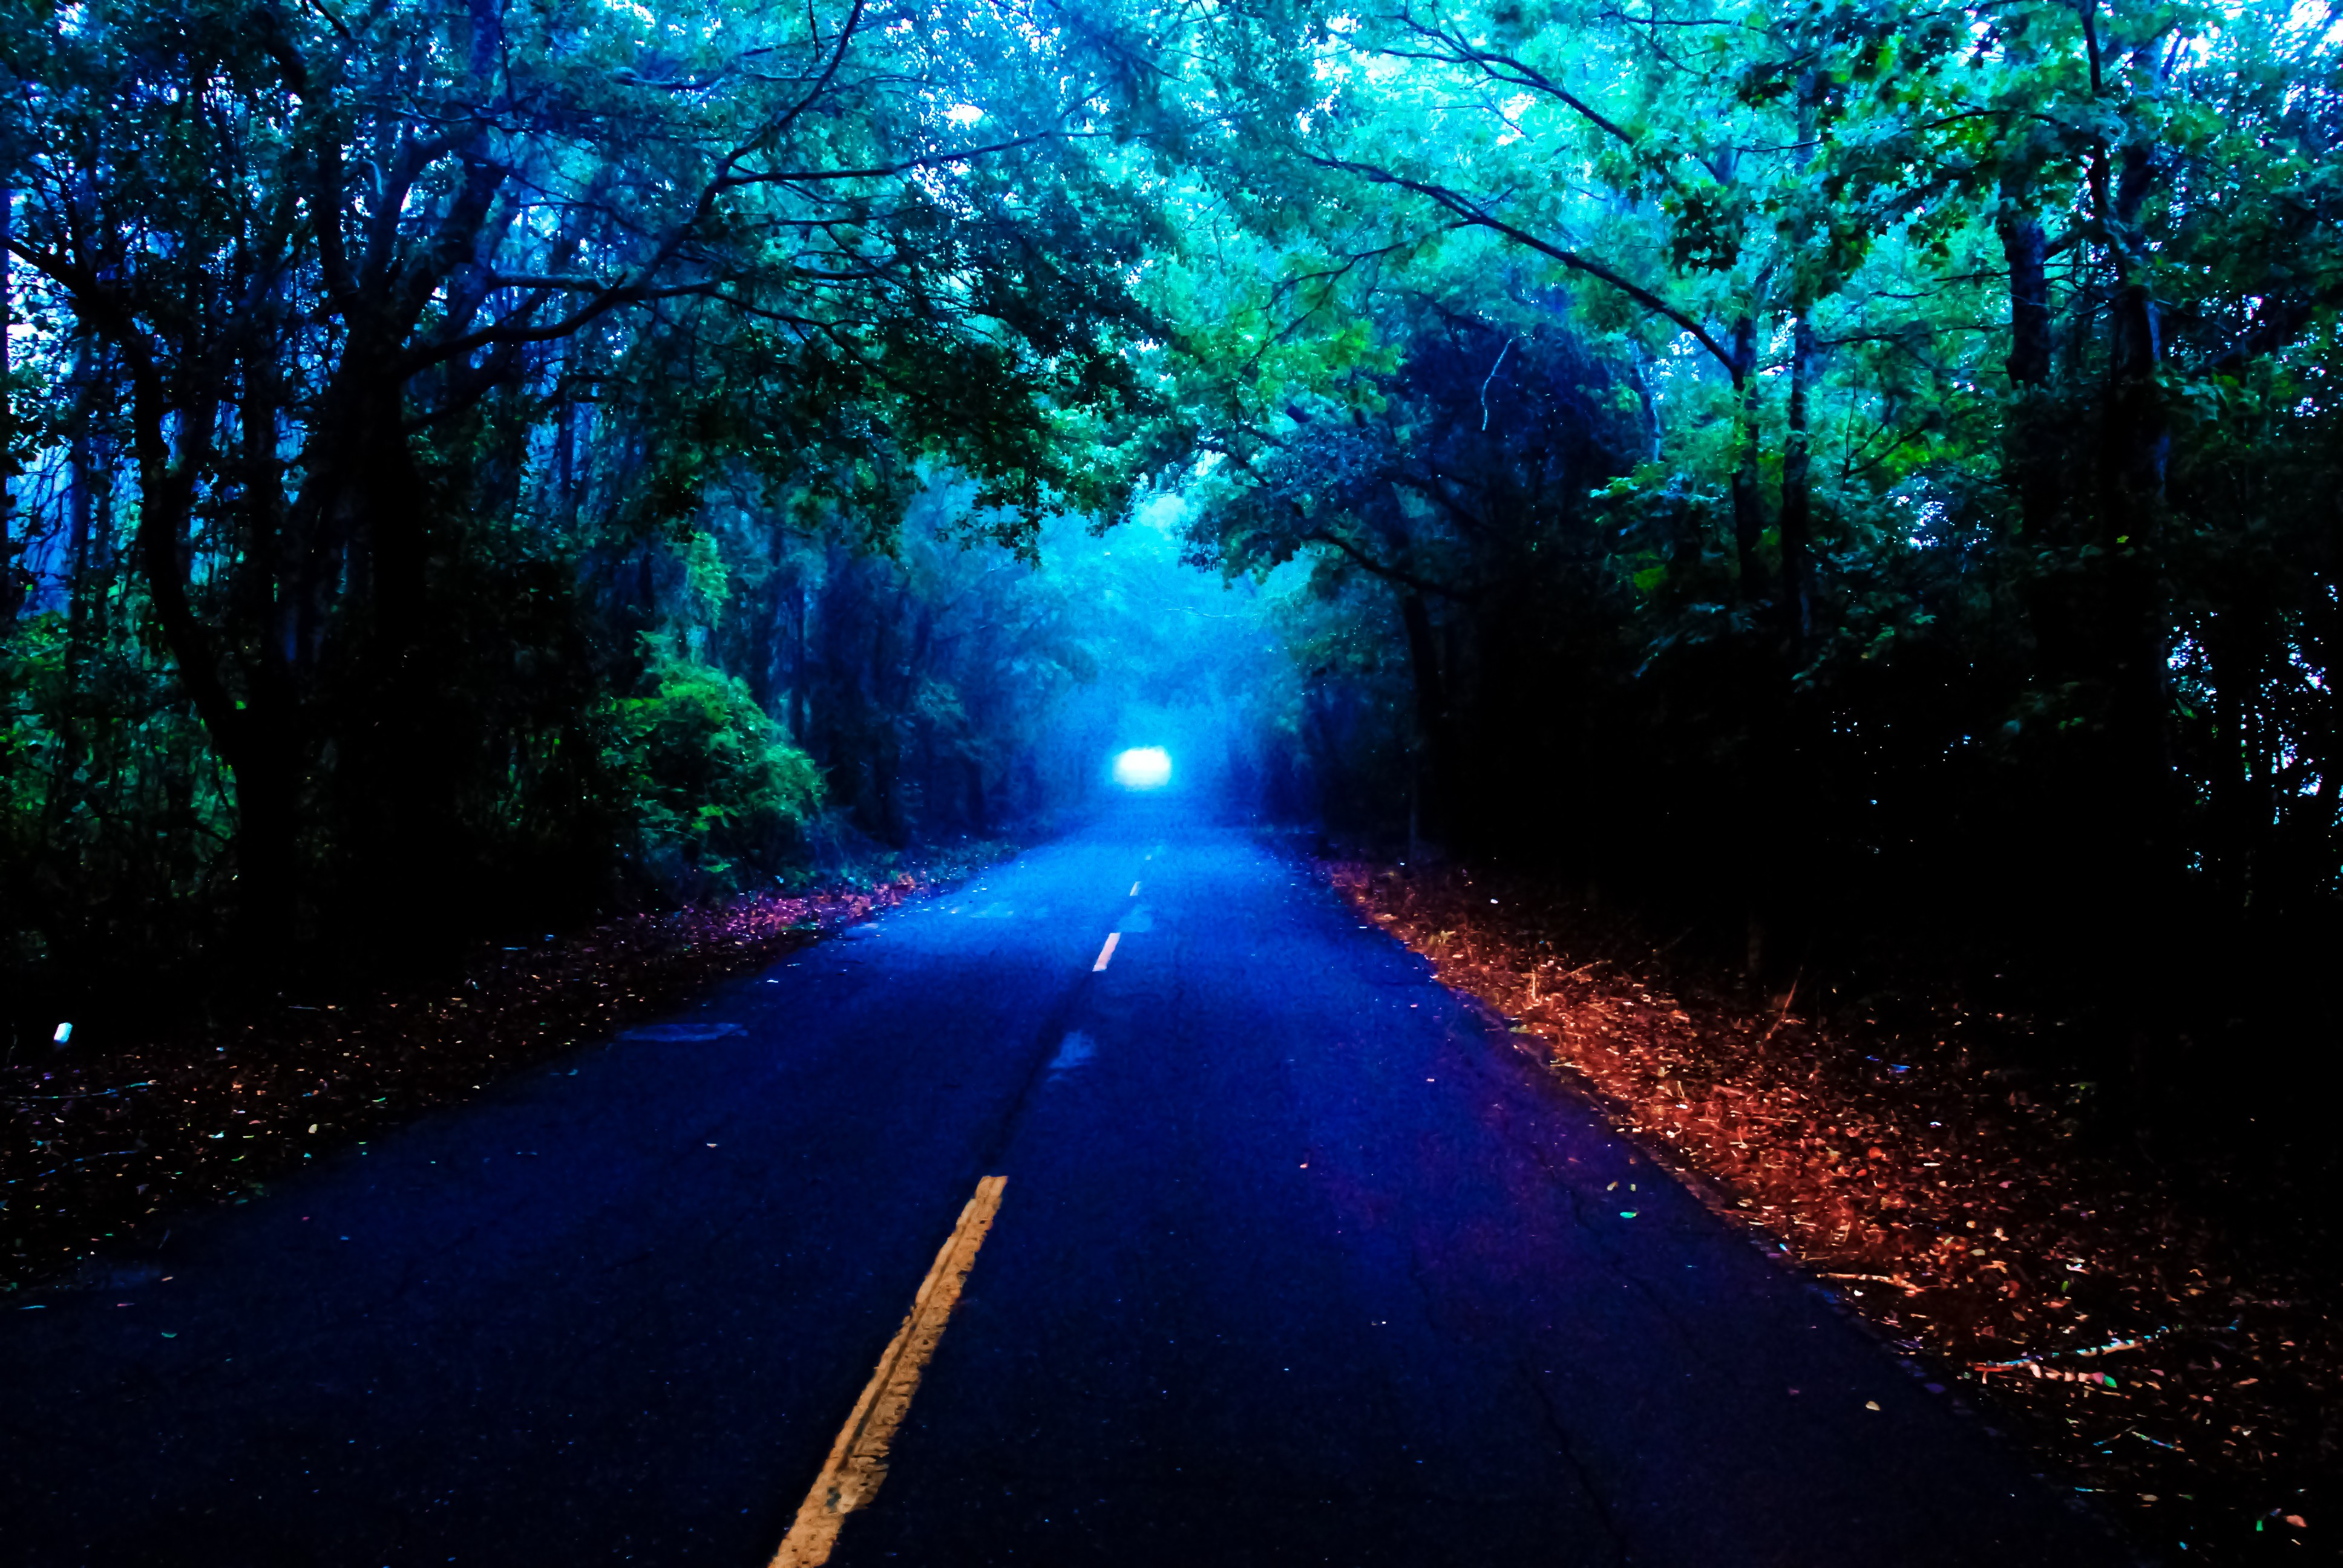 Foggy Road On Autumn Night 4k Ultra Hd Wallpaper Background Image 3872x2592 Id 687594 Wallpaper Abyss